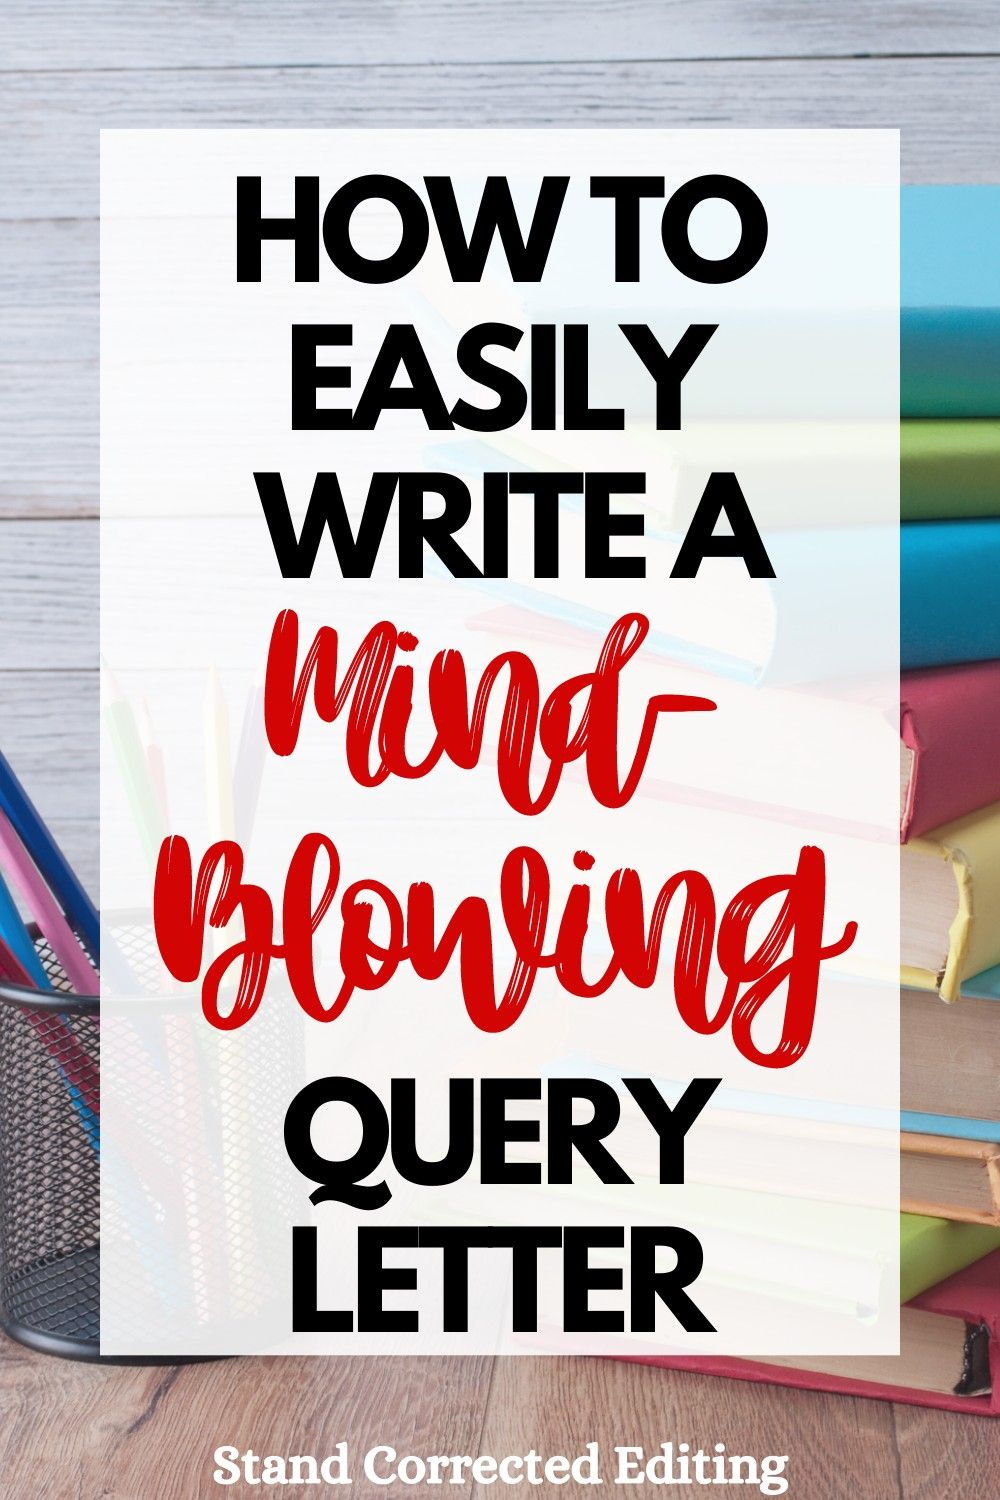 How to Write a Flawless Query Letter for Your Dream Literary Agent